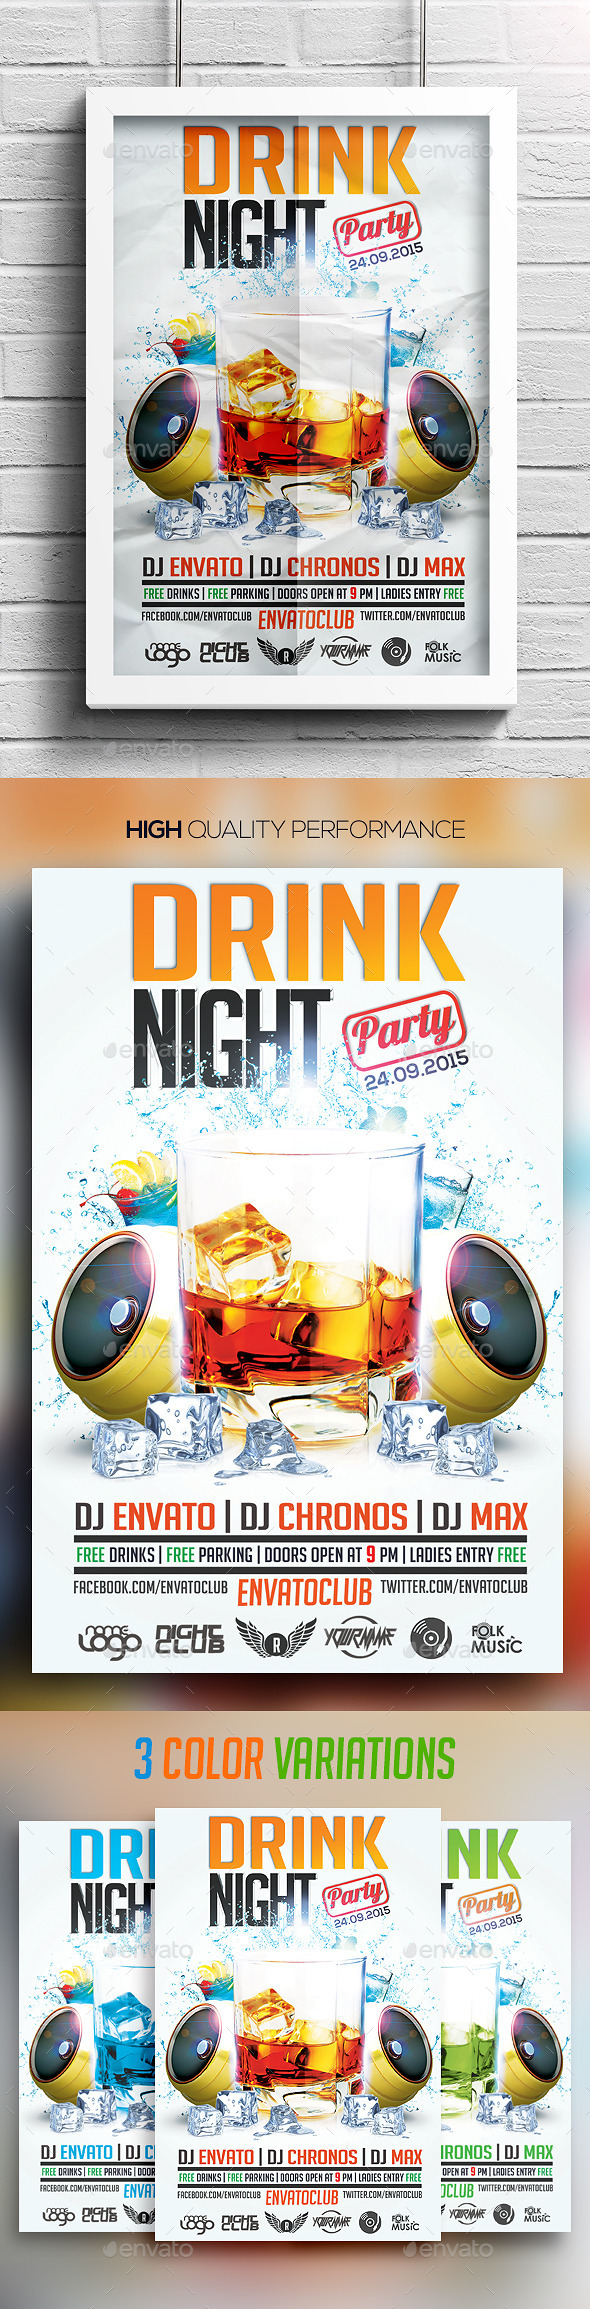 Drink Night Party Flyer - Clubs & Parties Events